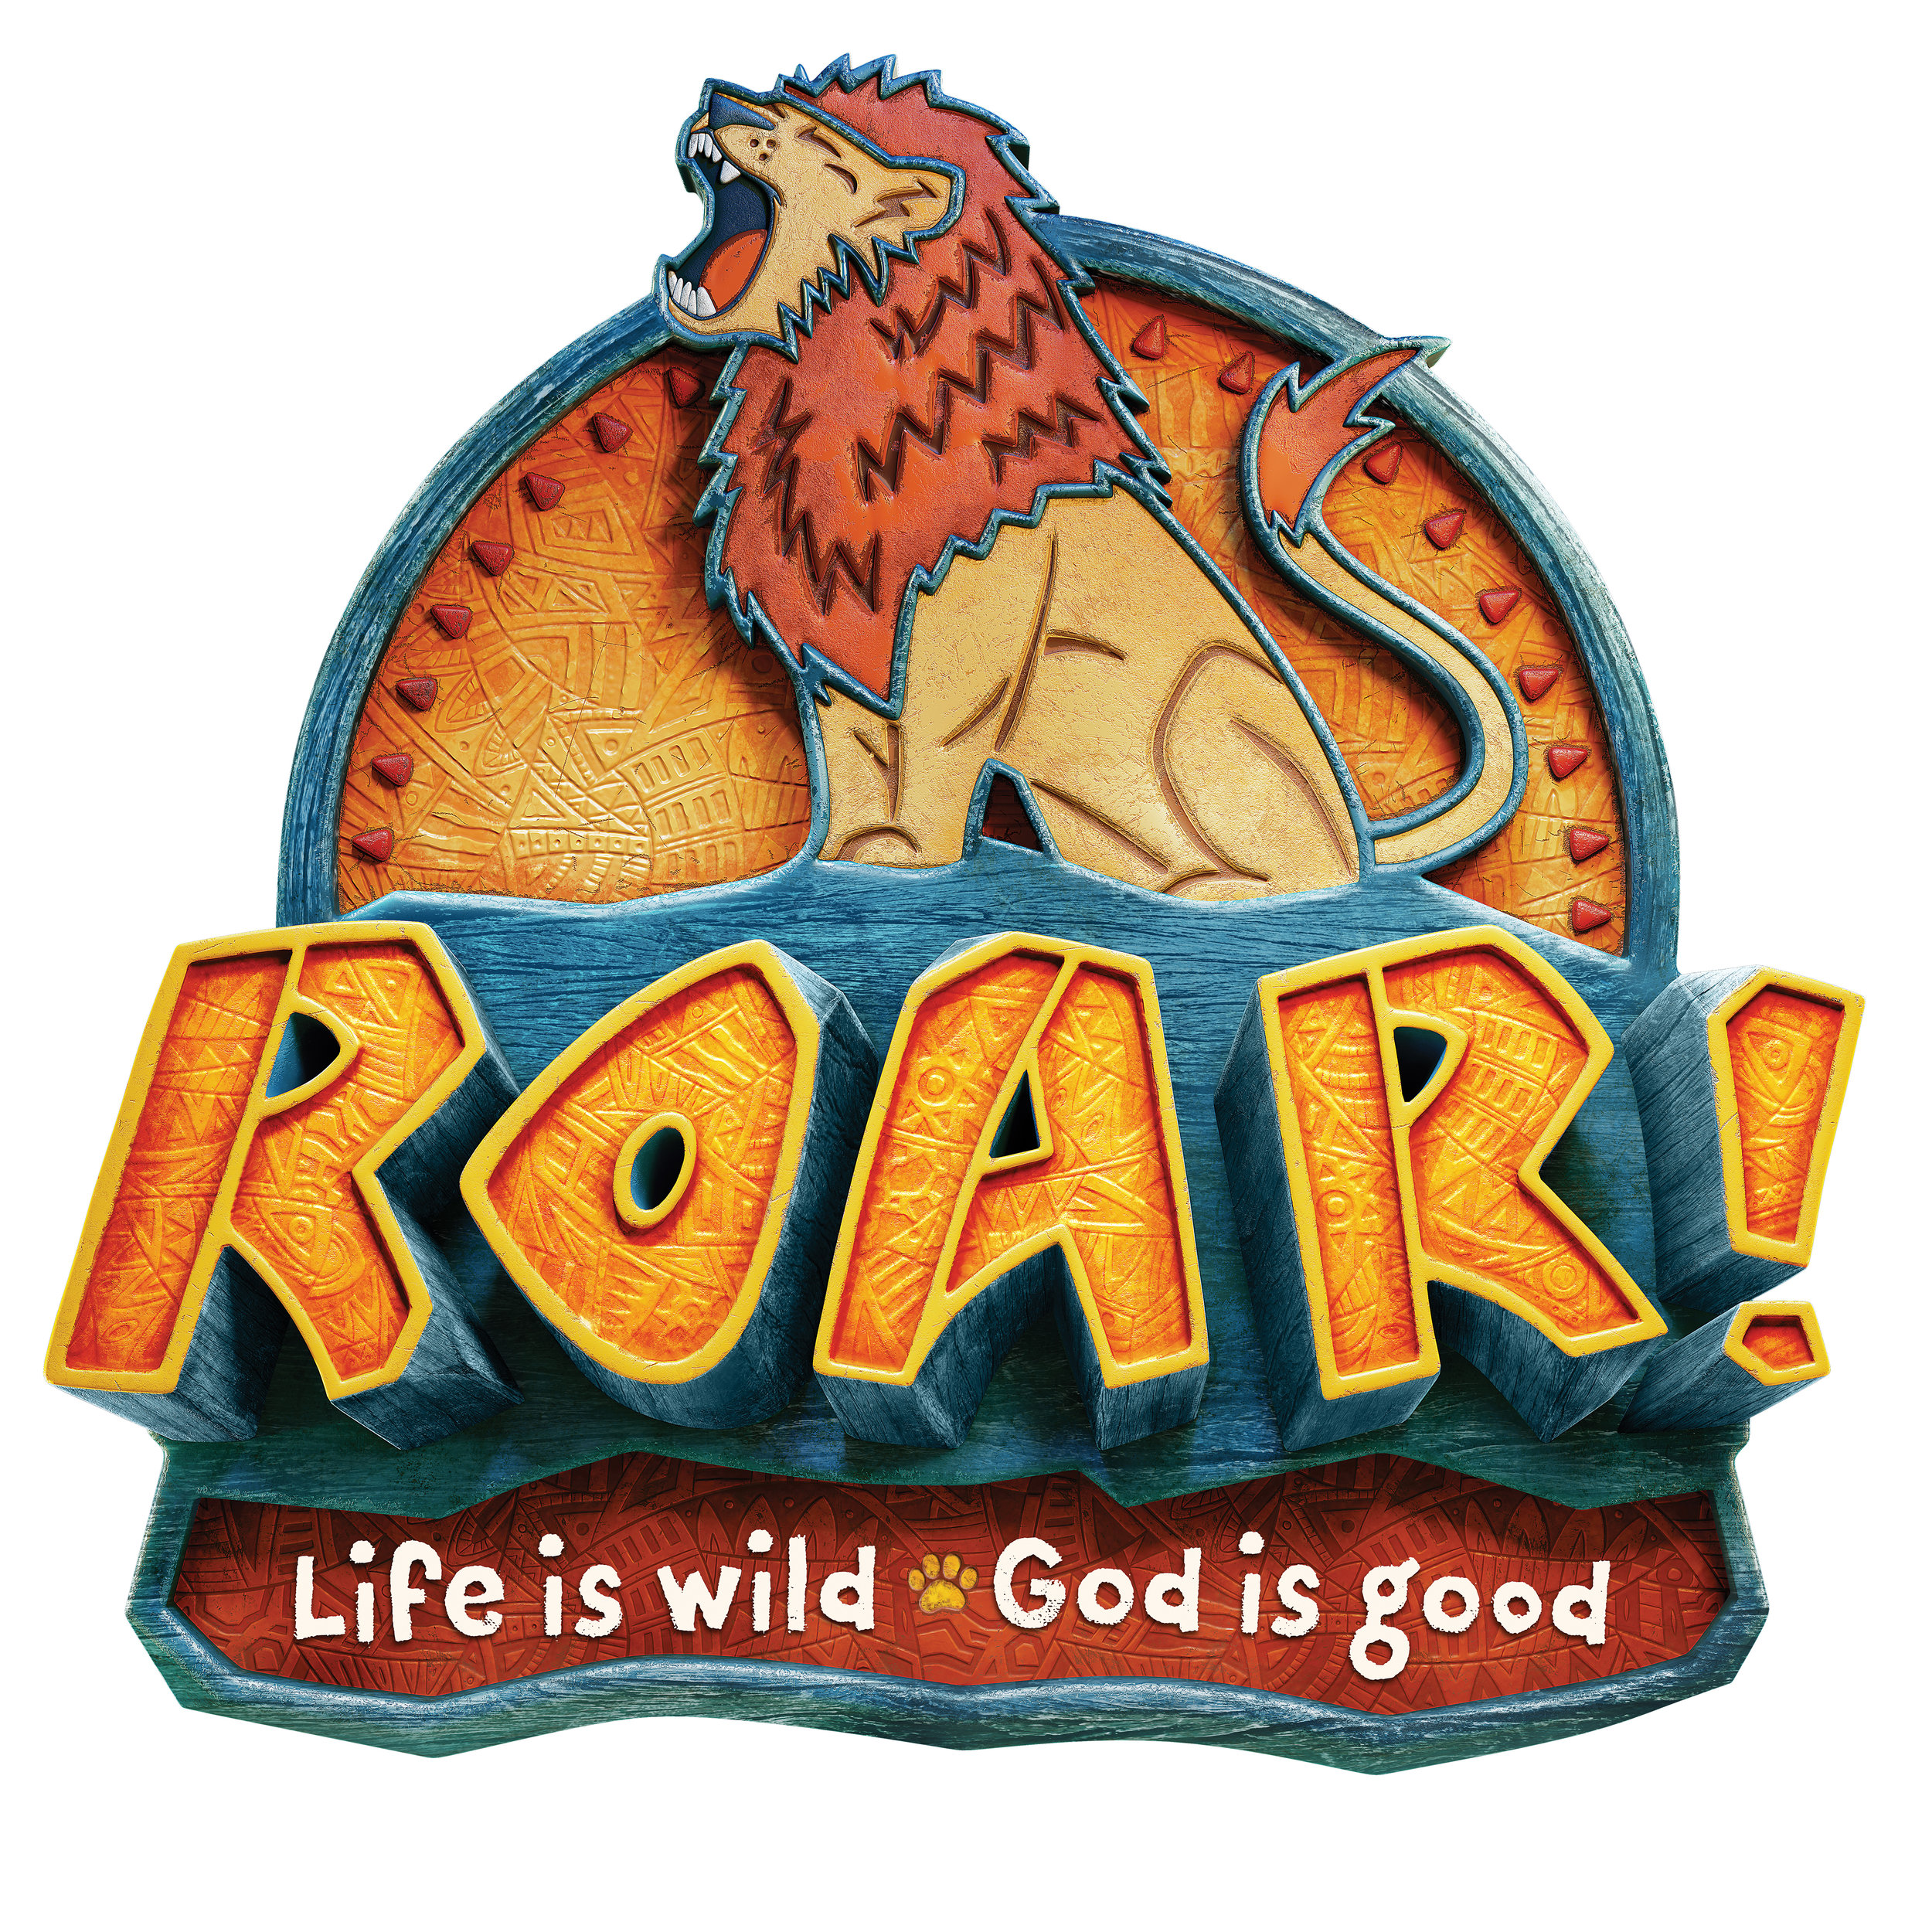 June 17-21 - We're roaring with excitement for our annual summer JBC Kids Camp!